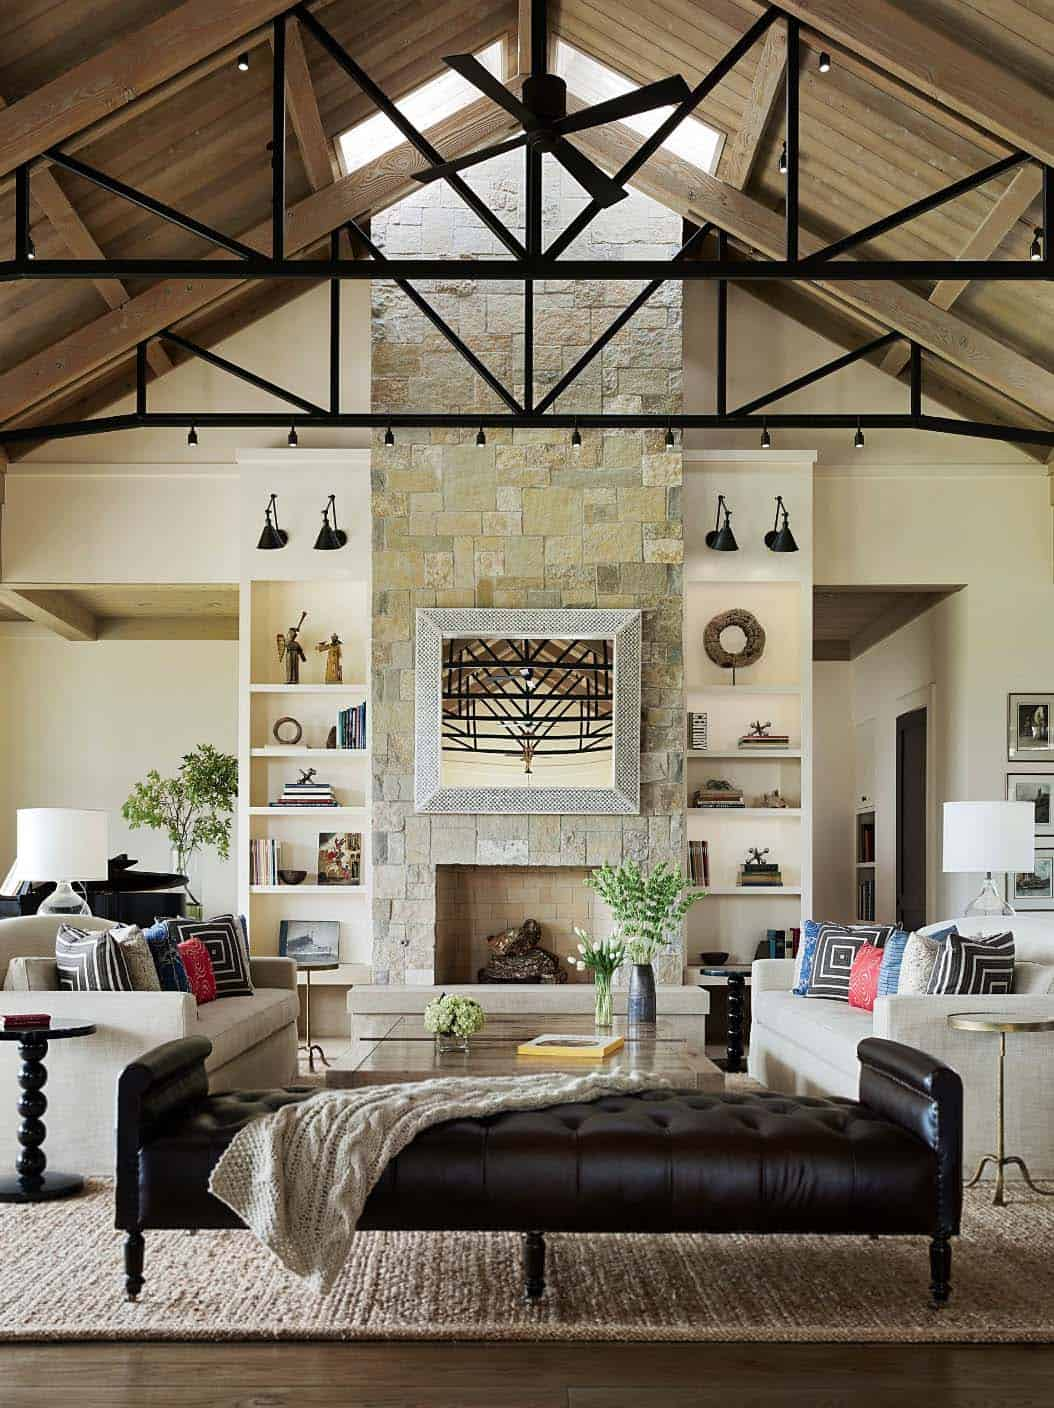 wine country living room wallpaper for feature wall a chic residence boasts amazing entertaining spaces above reclaimed oak dining table was custom designed this space built on casters the extends out an extra foot to accommodate up 24 dinner